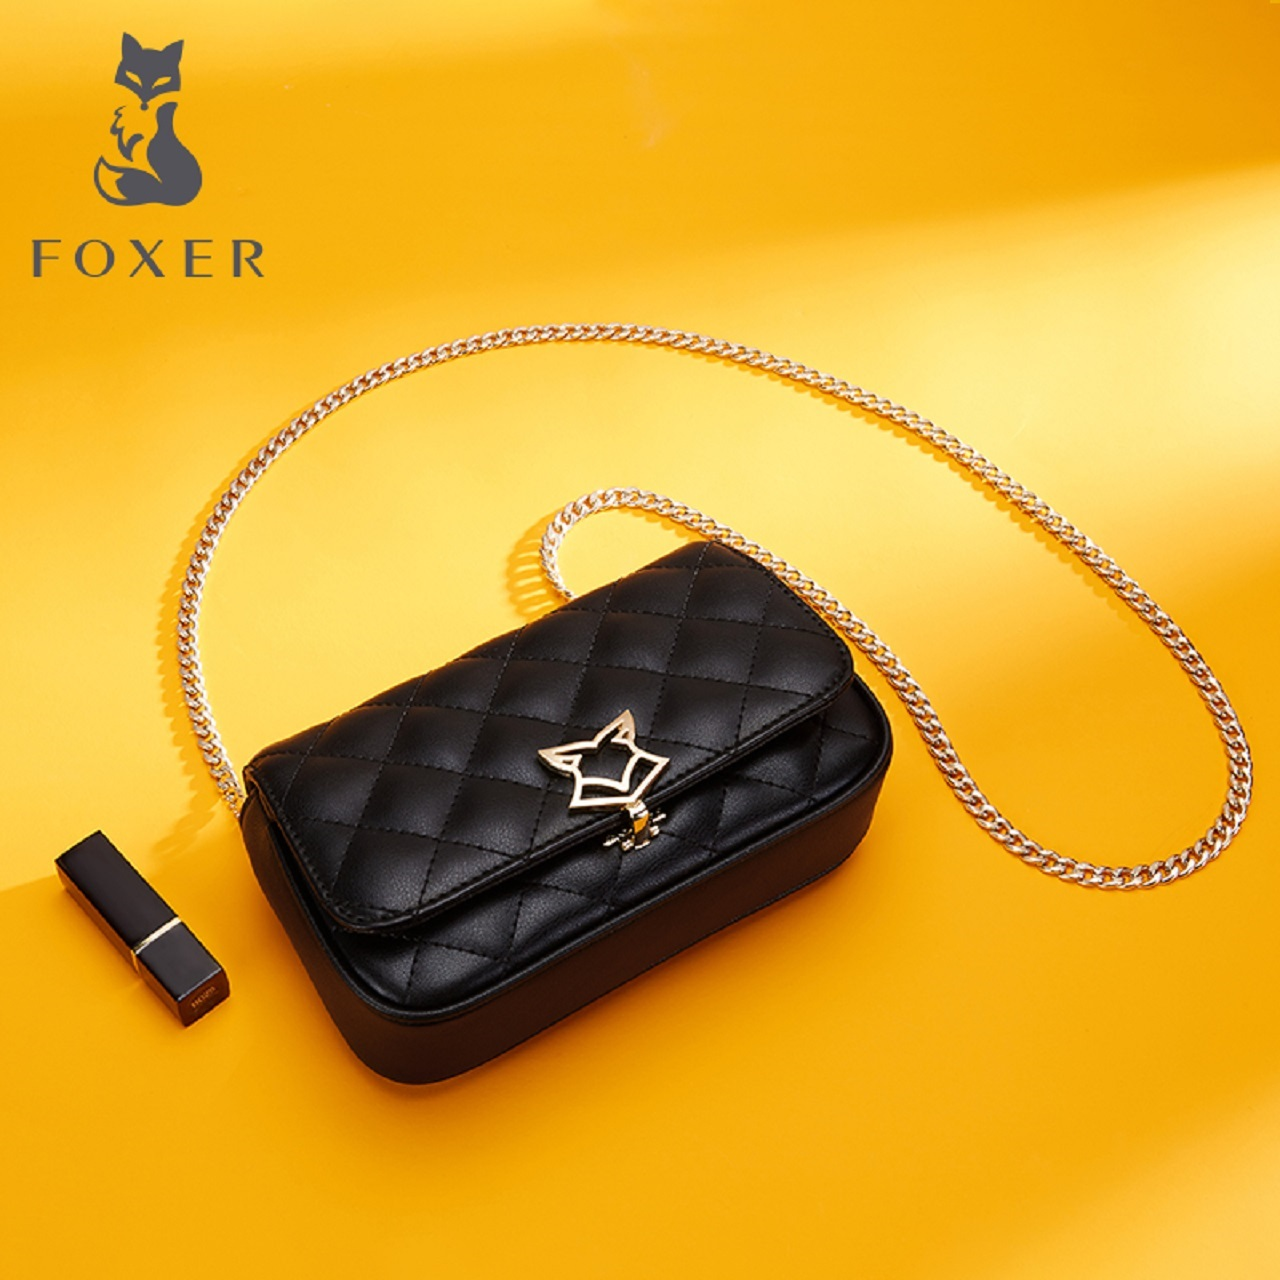 Golden Fox female bag small bag 2018 new female crossbody bag shoulder rhombic chain bag mini small wind leather